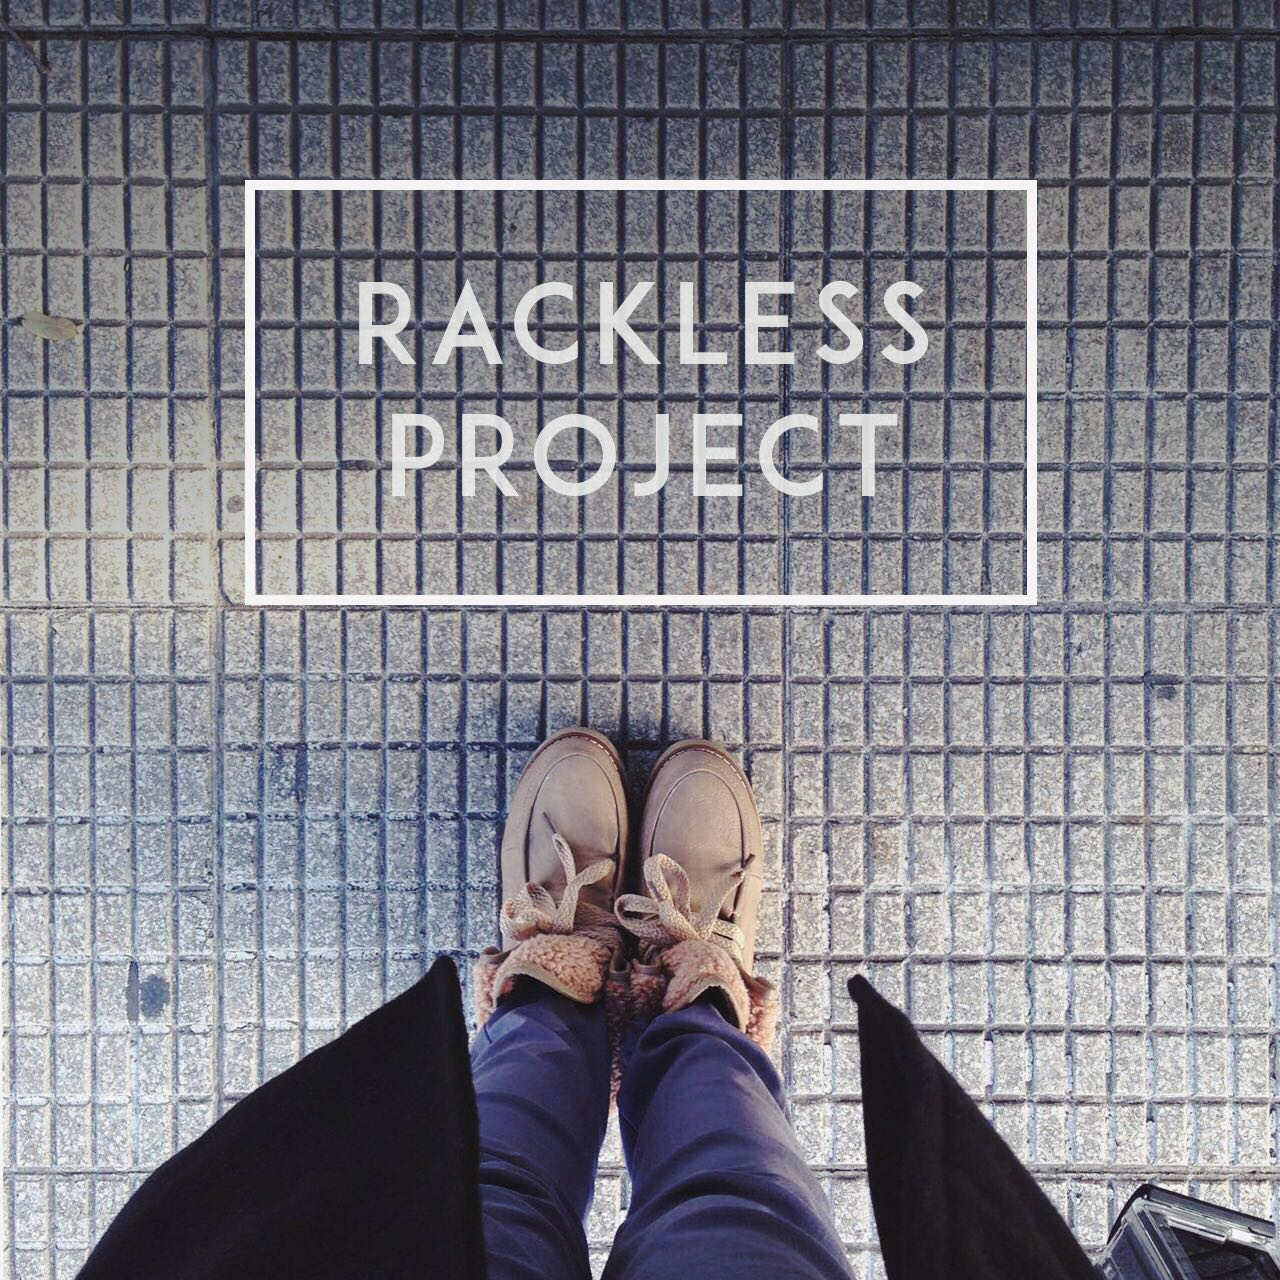 racklessproject